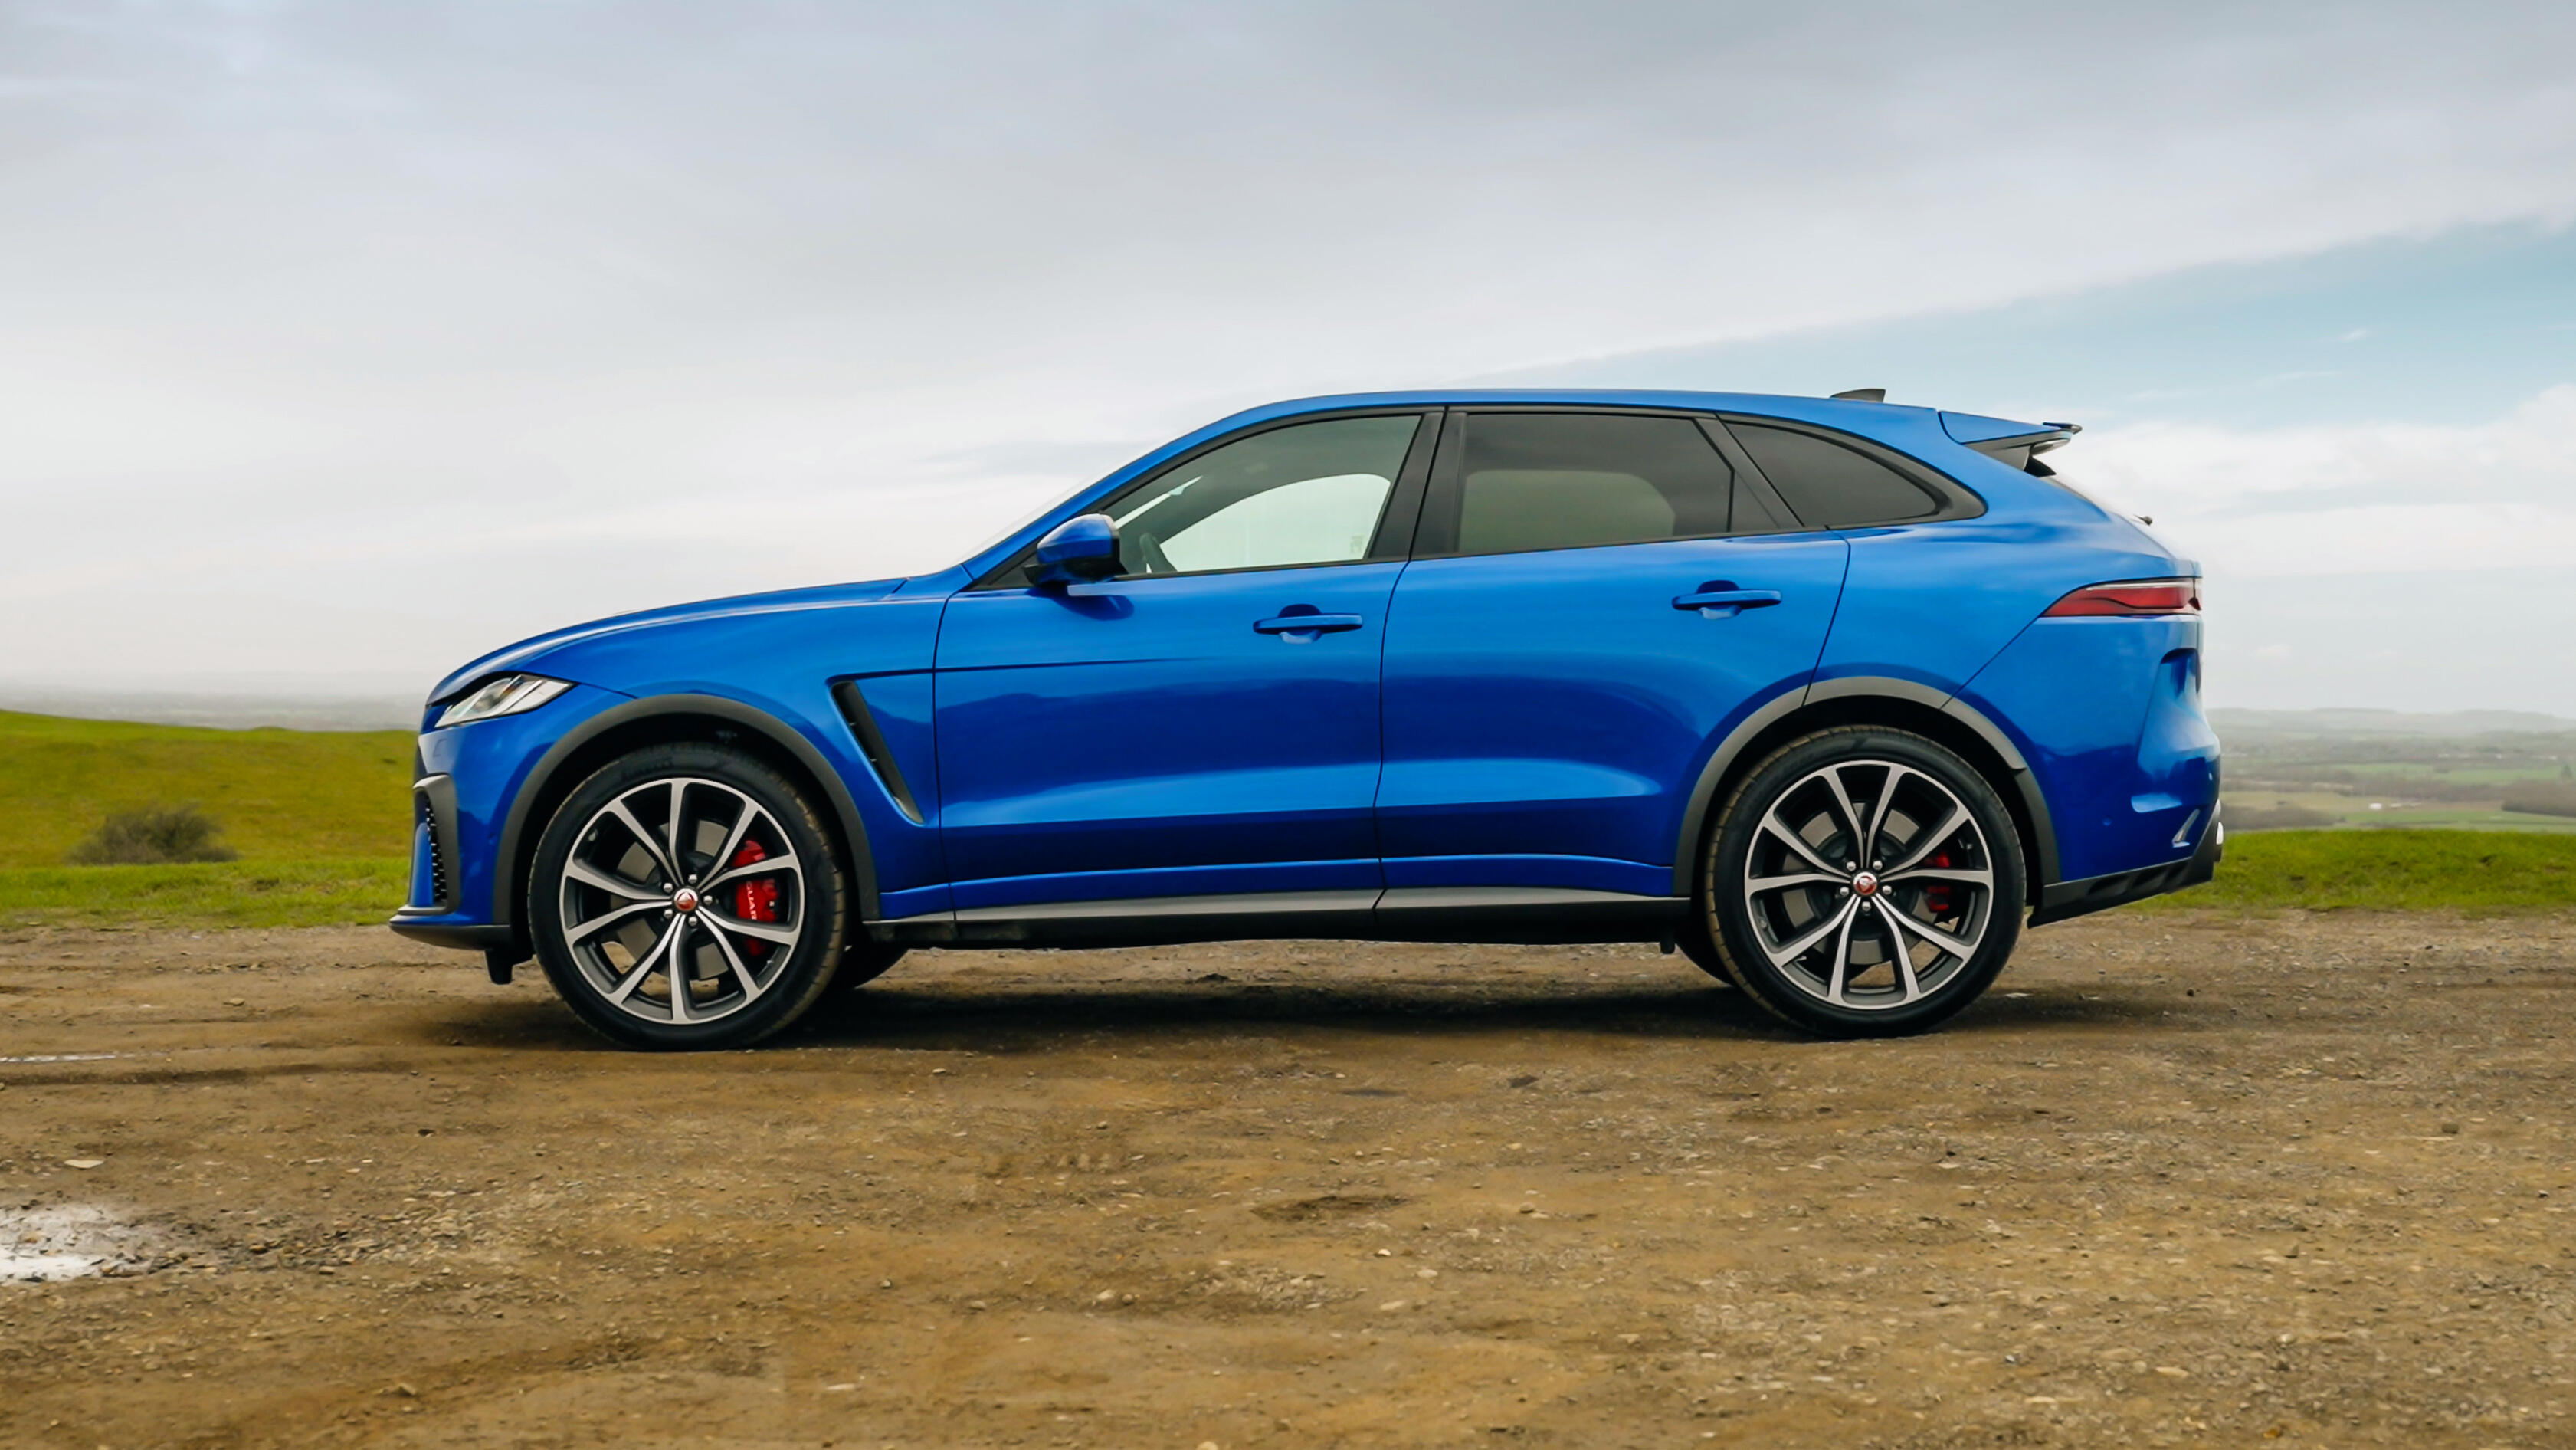 Video: The 2021 Jaguar F-Pace SVR might be the best-sounding SUV you can buy today